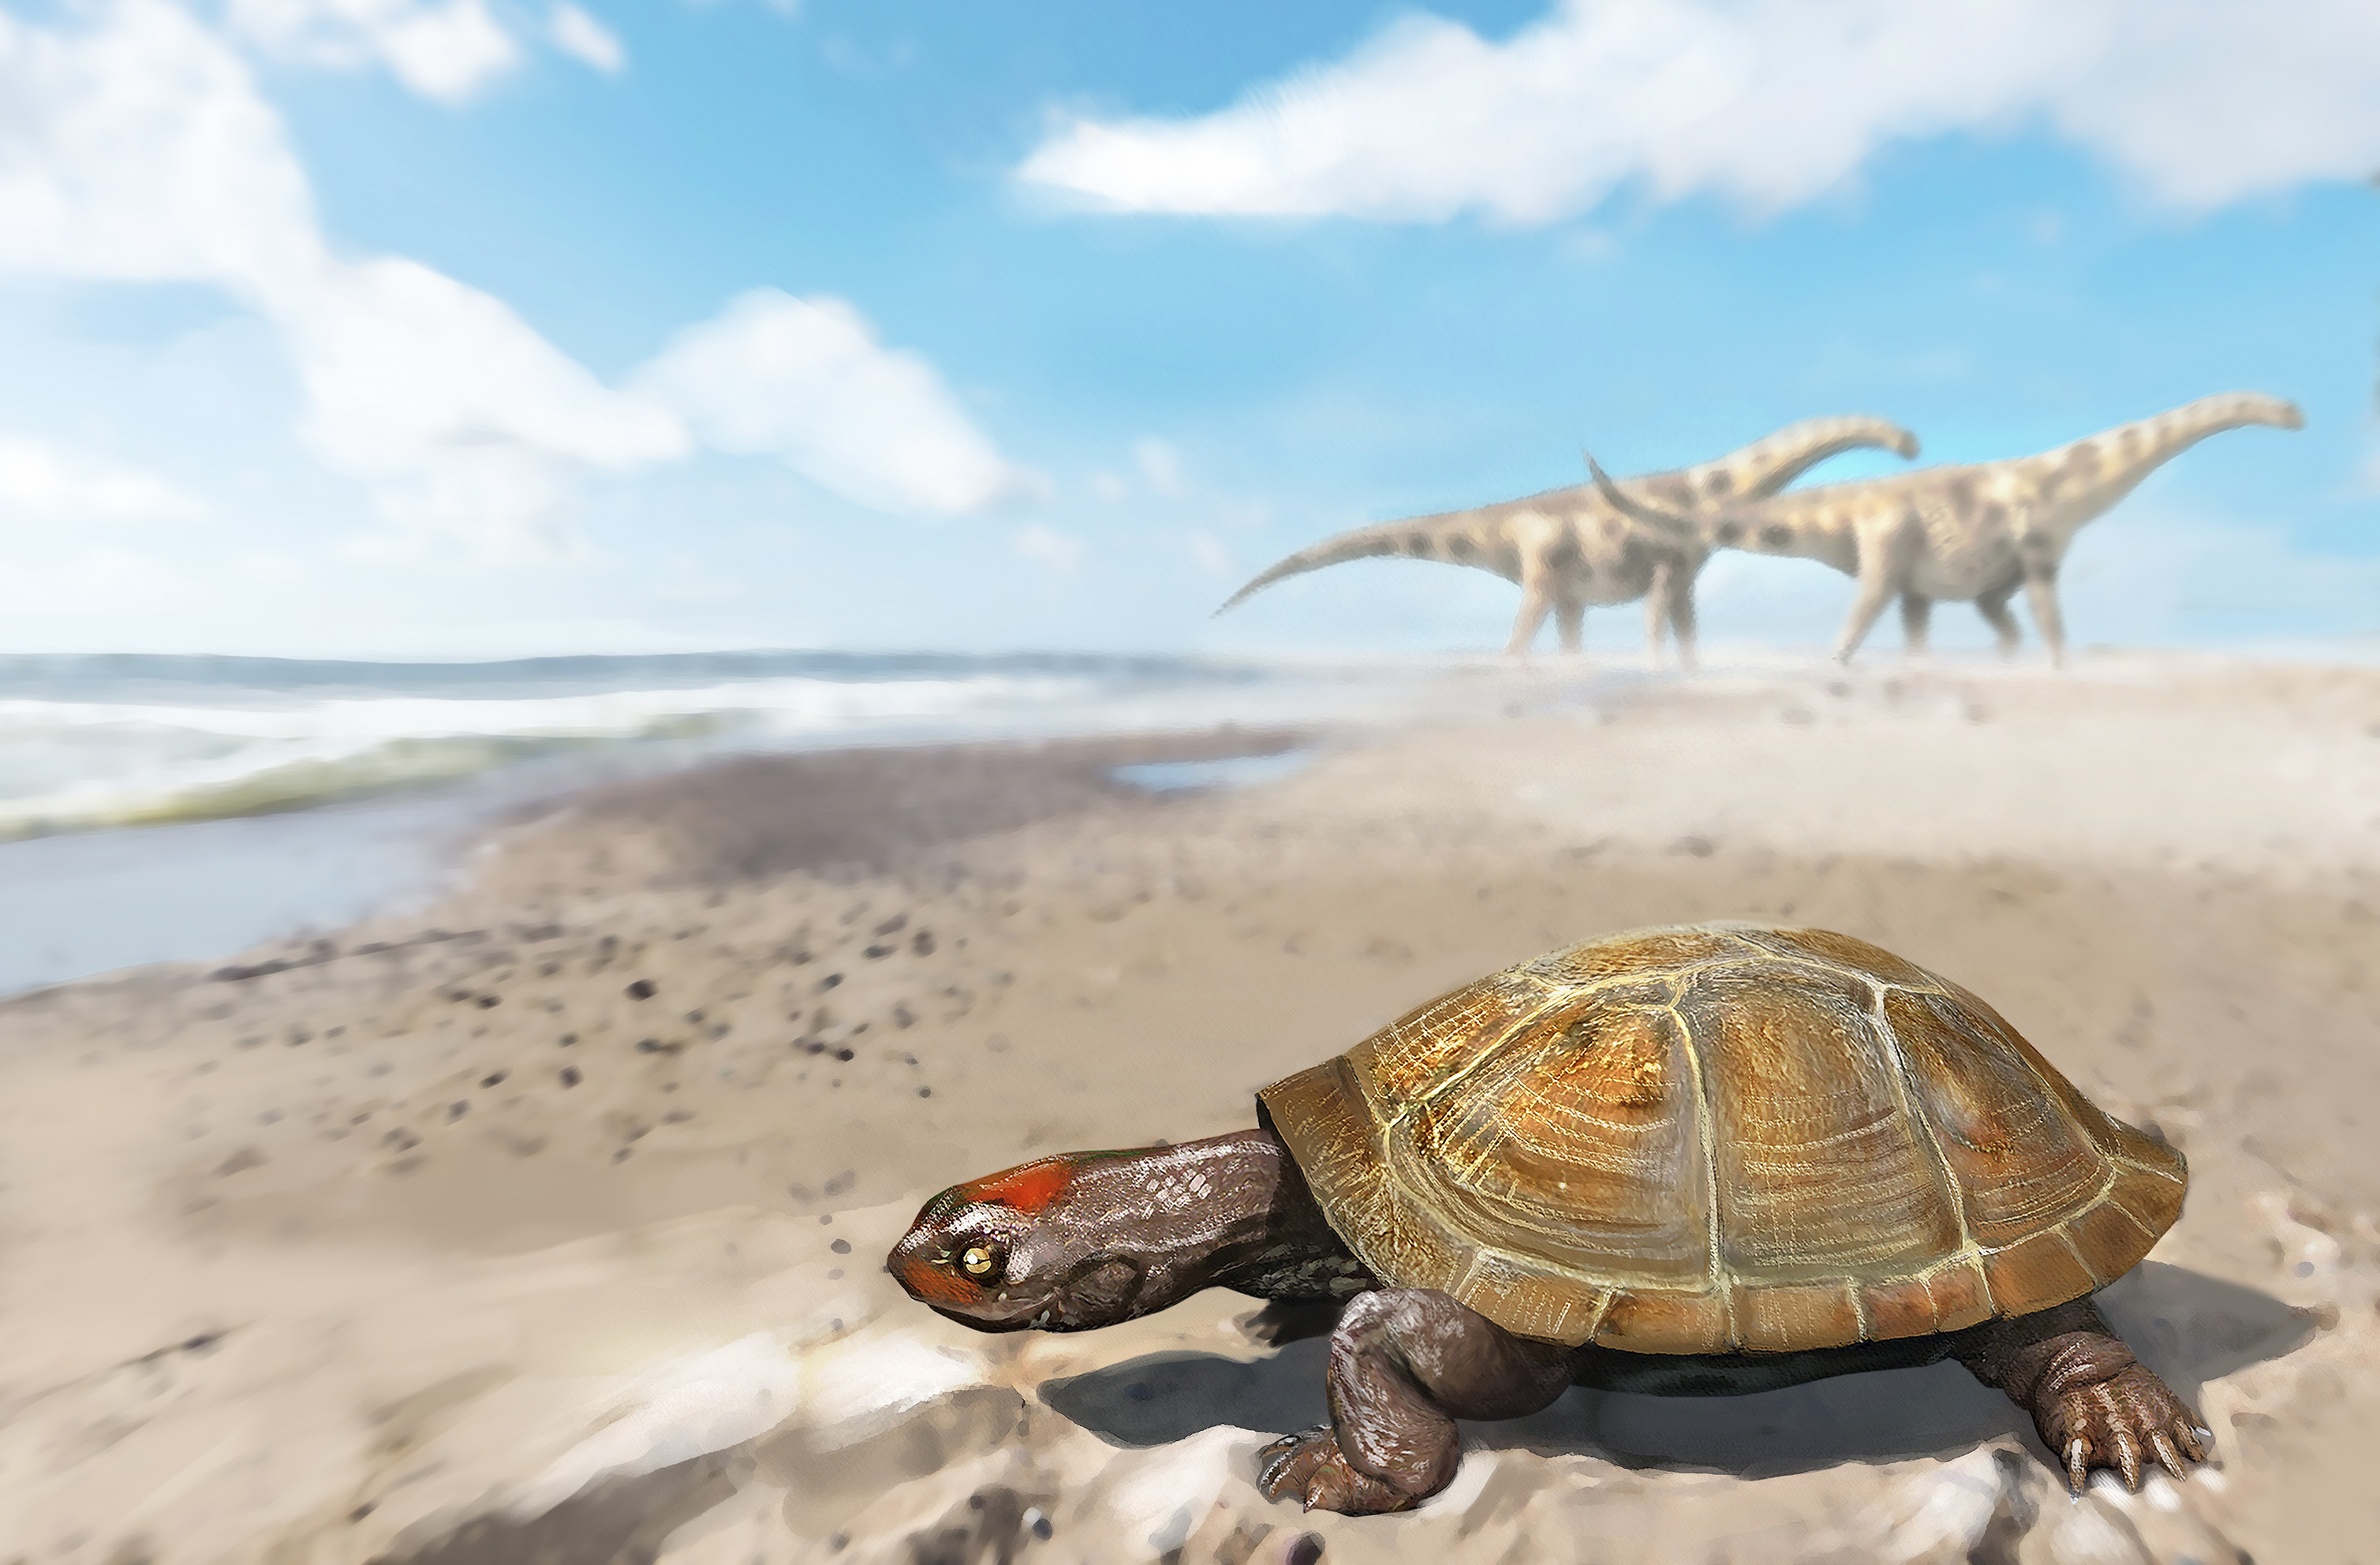 Scientists now have evidence that a river turtle made an incredible journey out of the ancient continent Gondwana 95 million years ago.